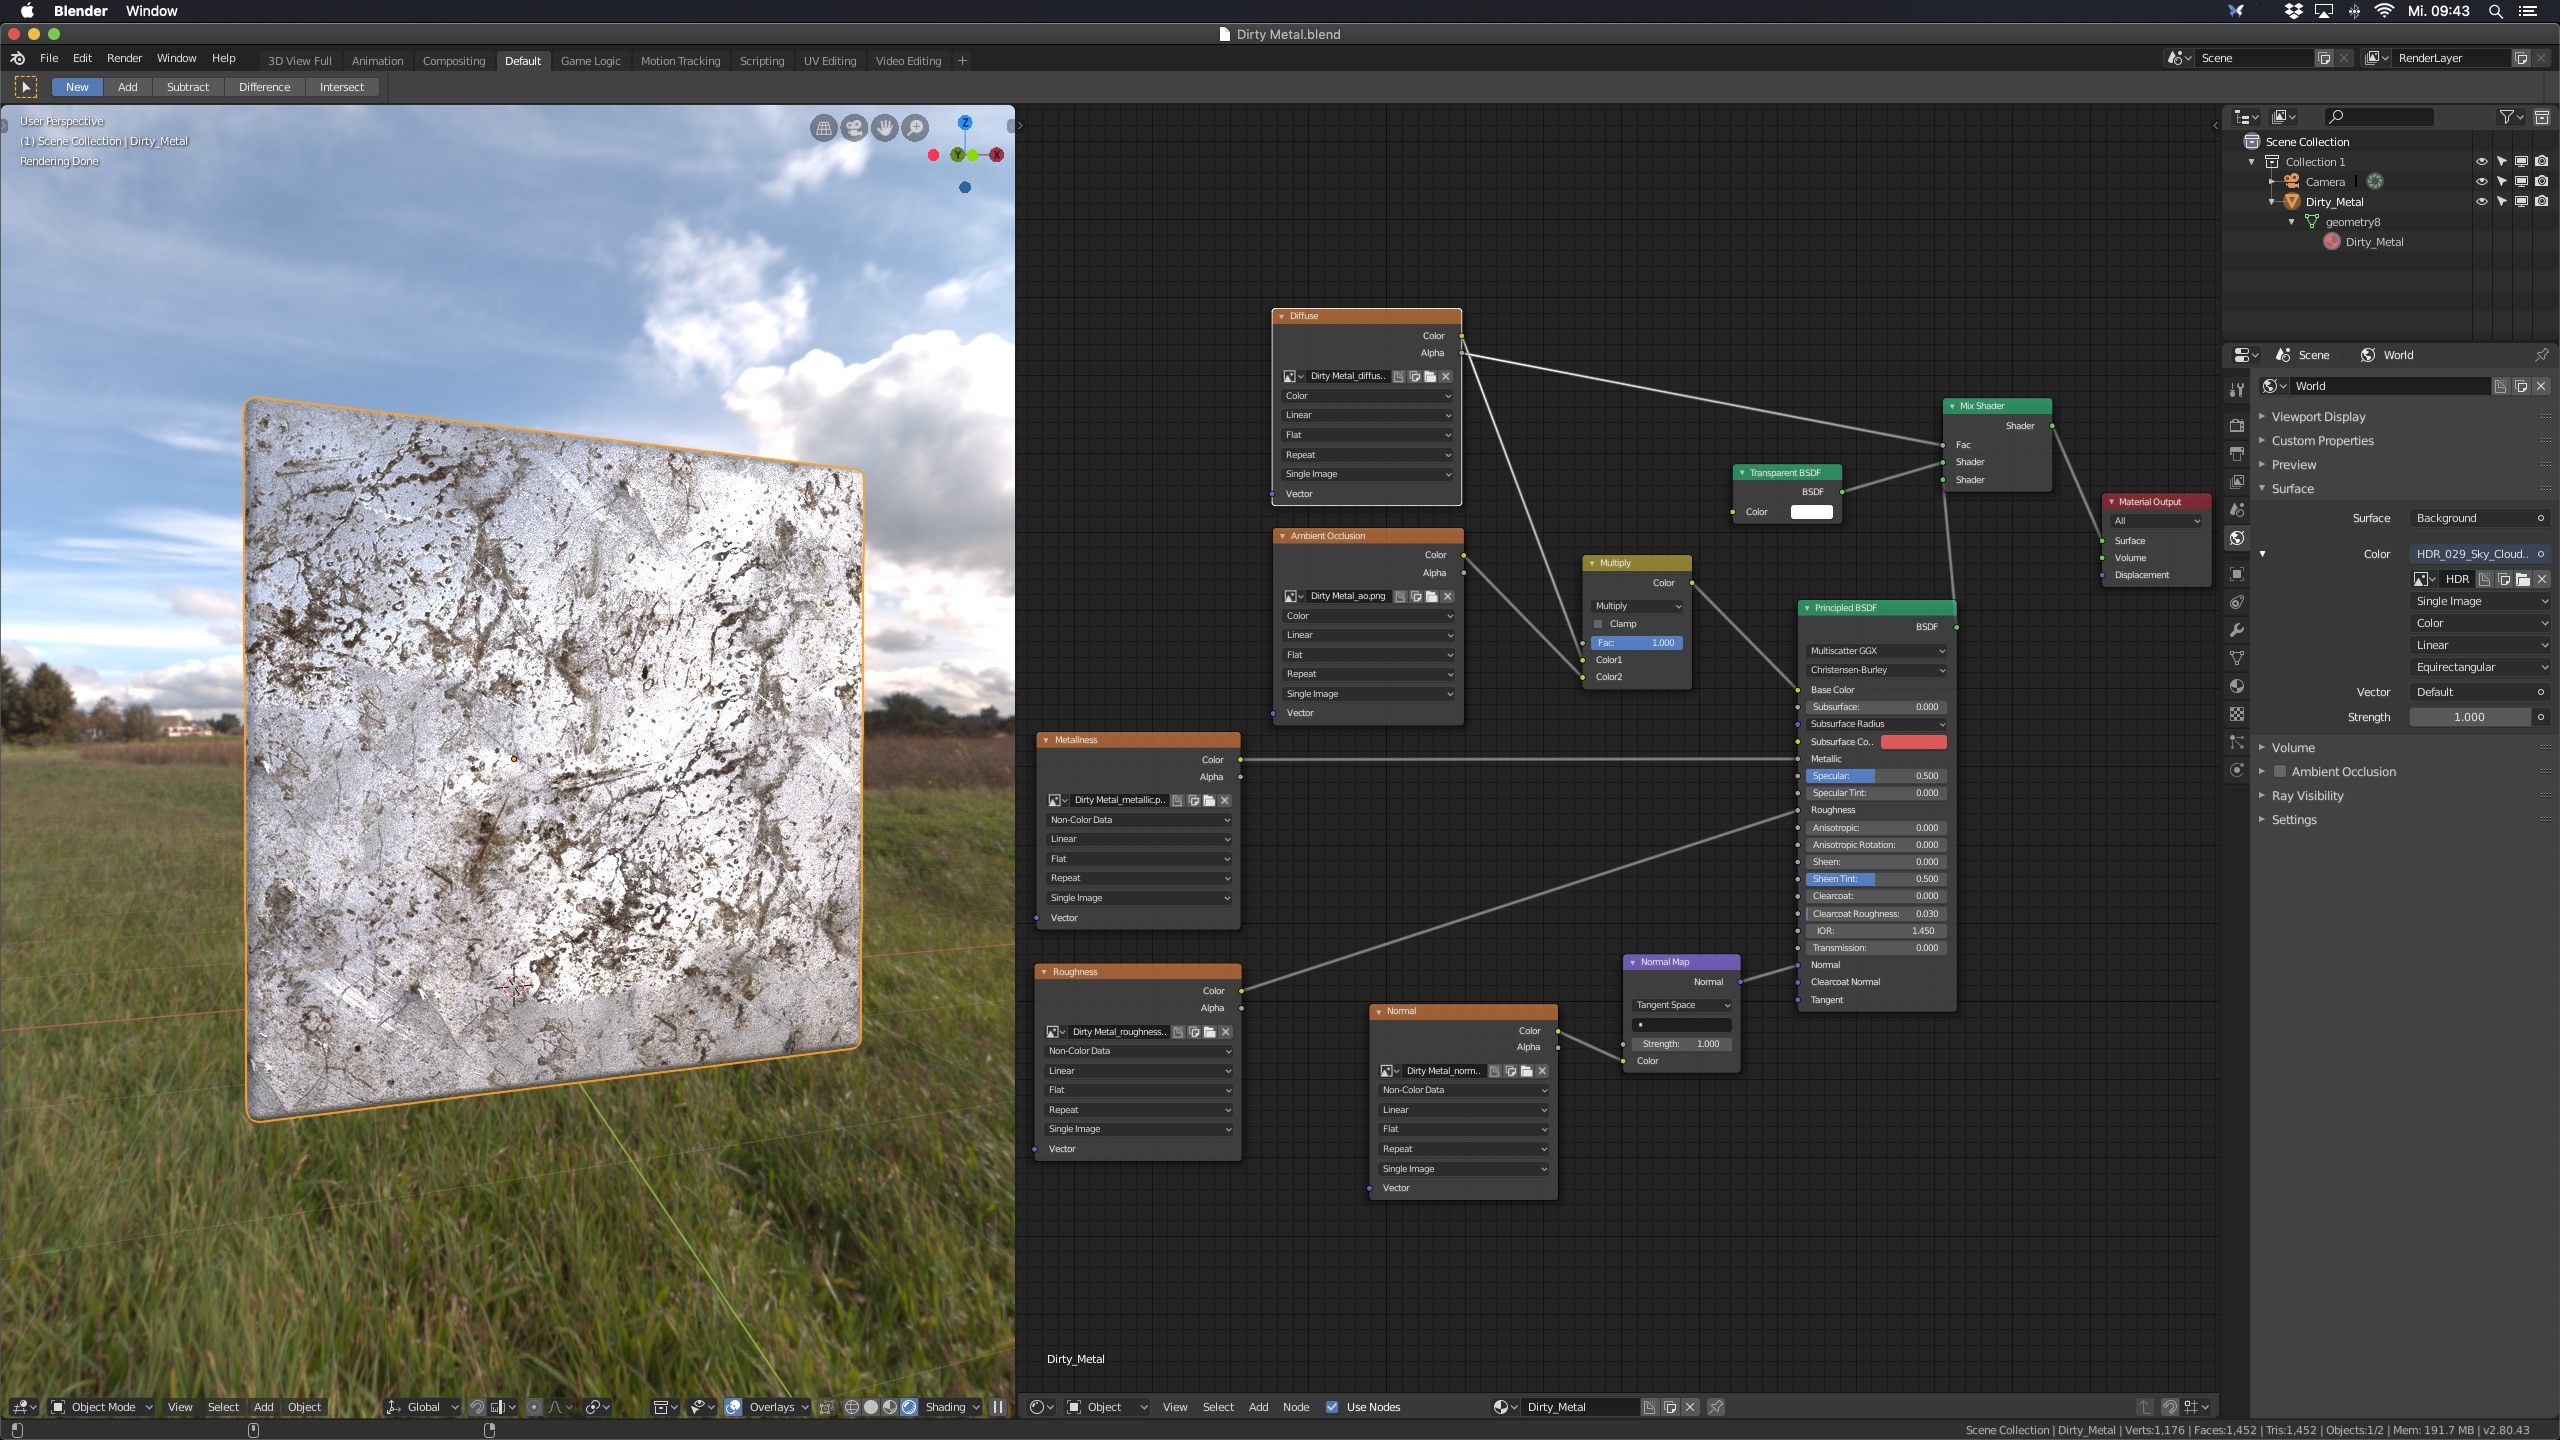 PBRtist – The easy way to create 3D materials